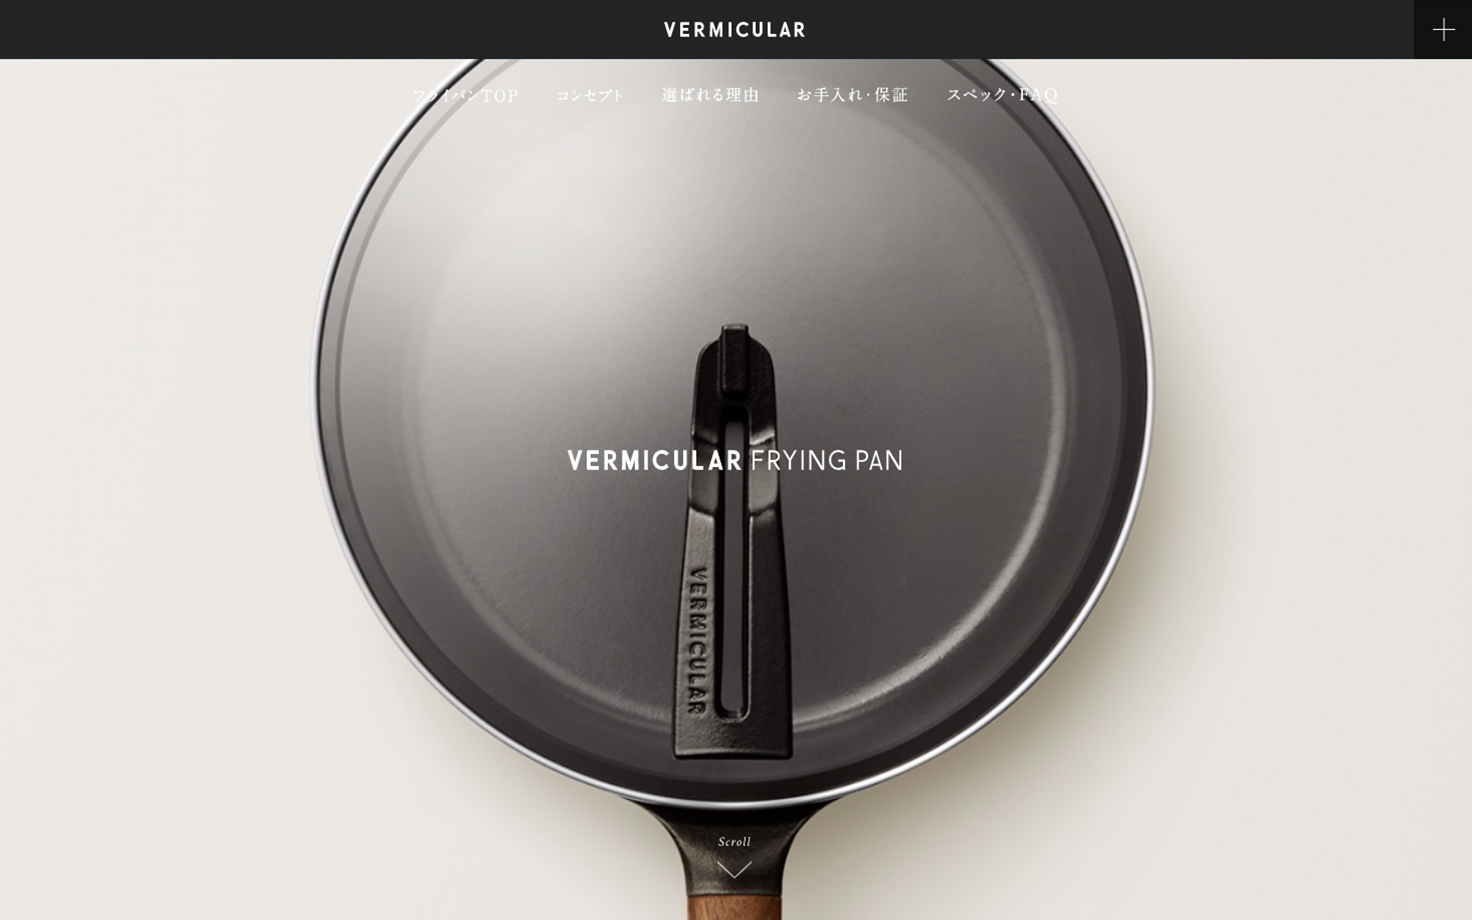 VERMICULAR FRYING PAN